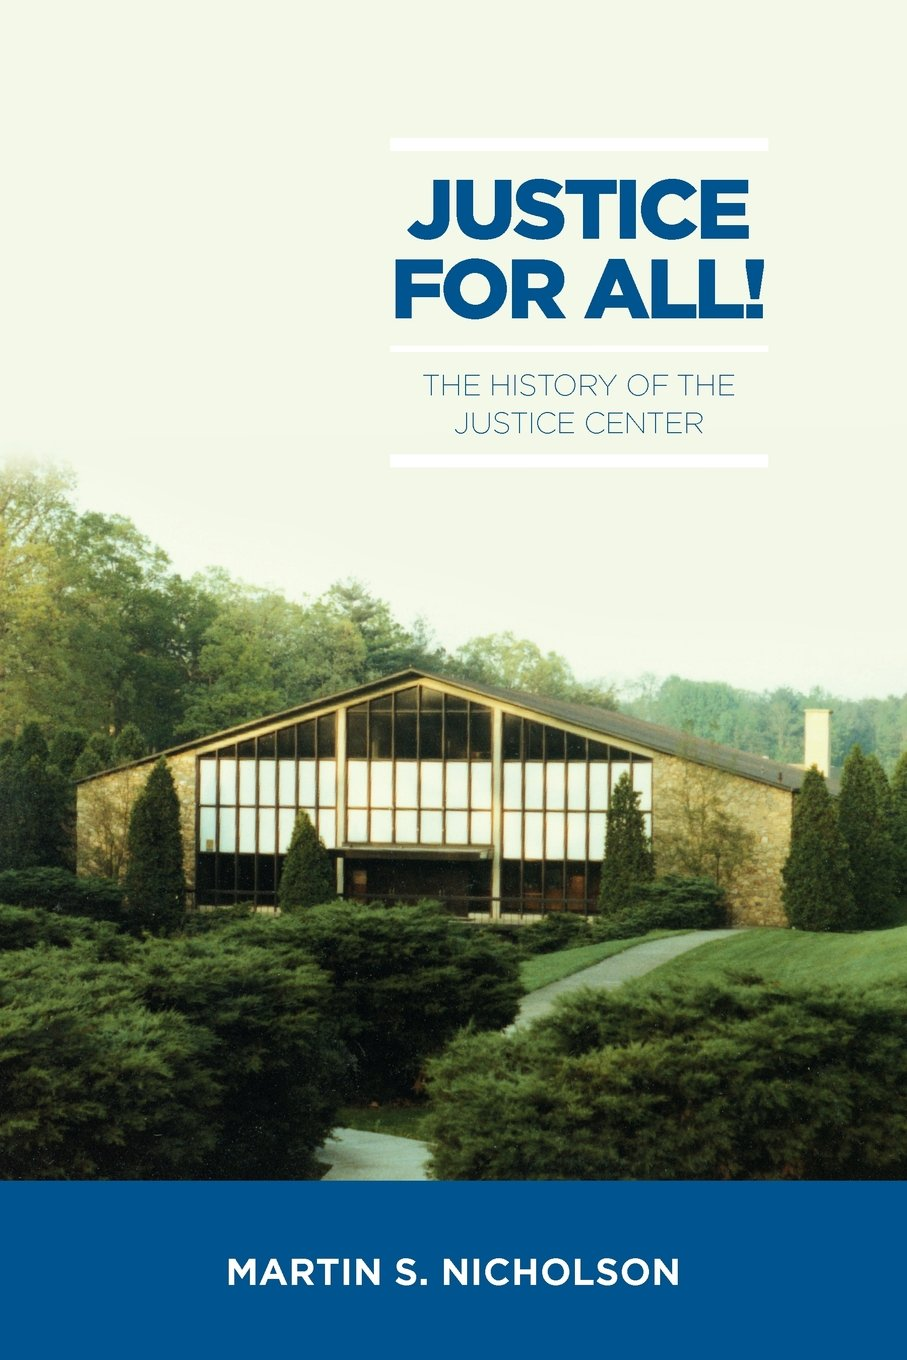 Download Justice For All!: The History of the Justice Center pdf